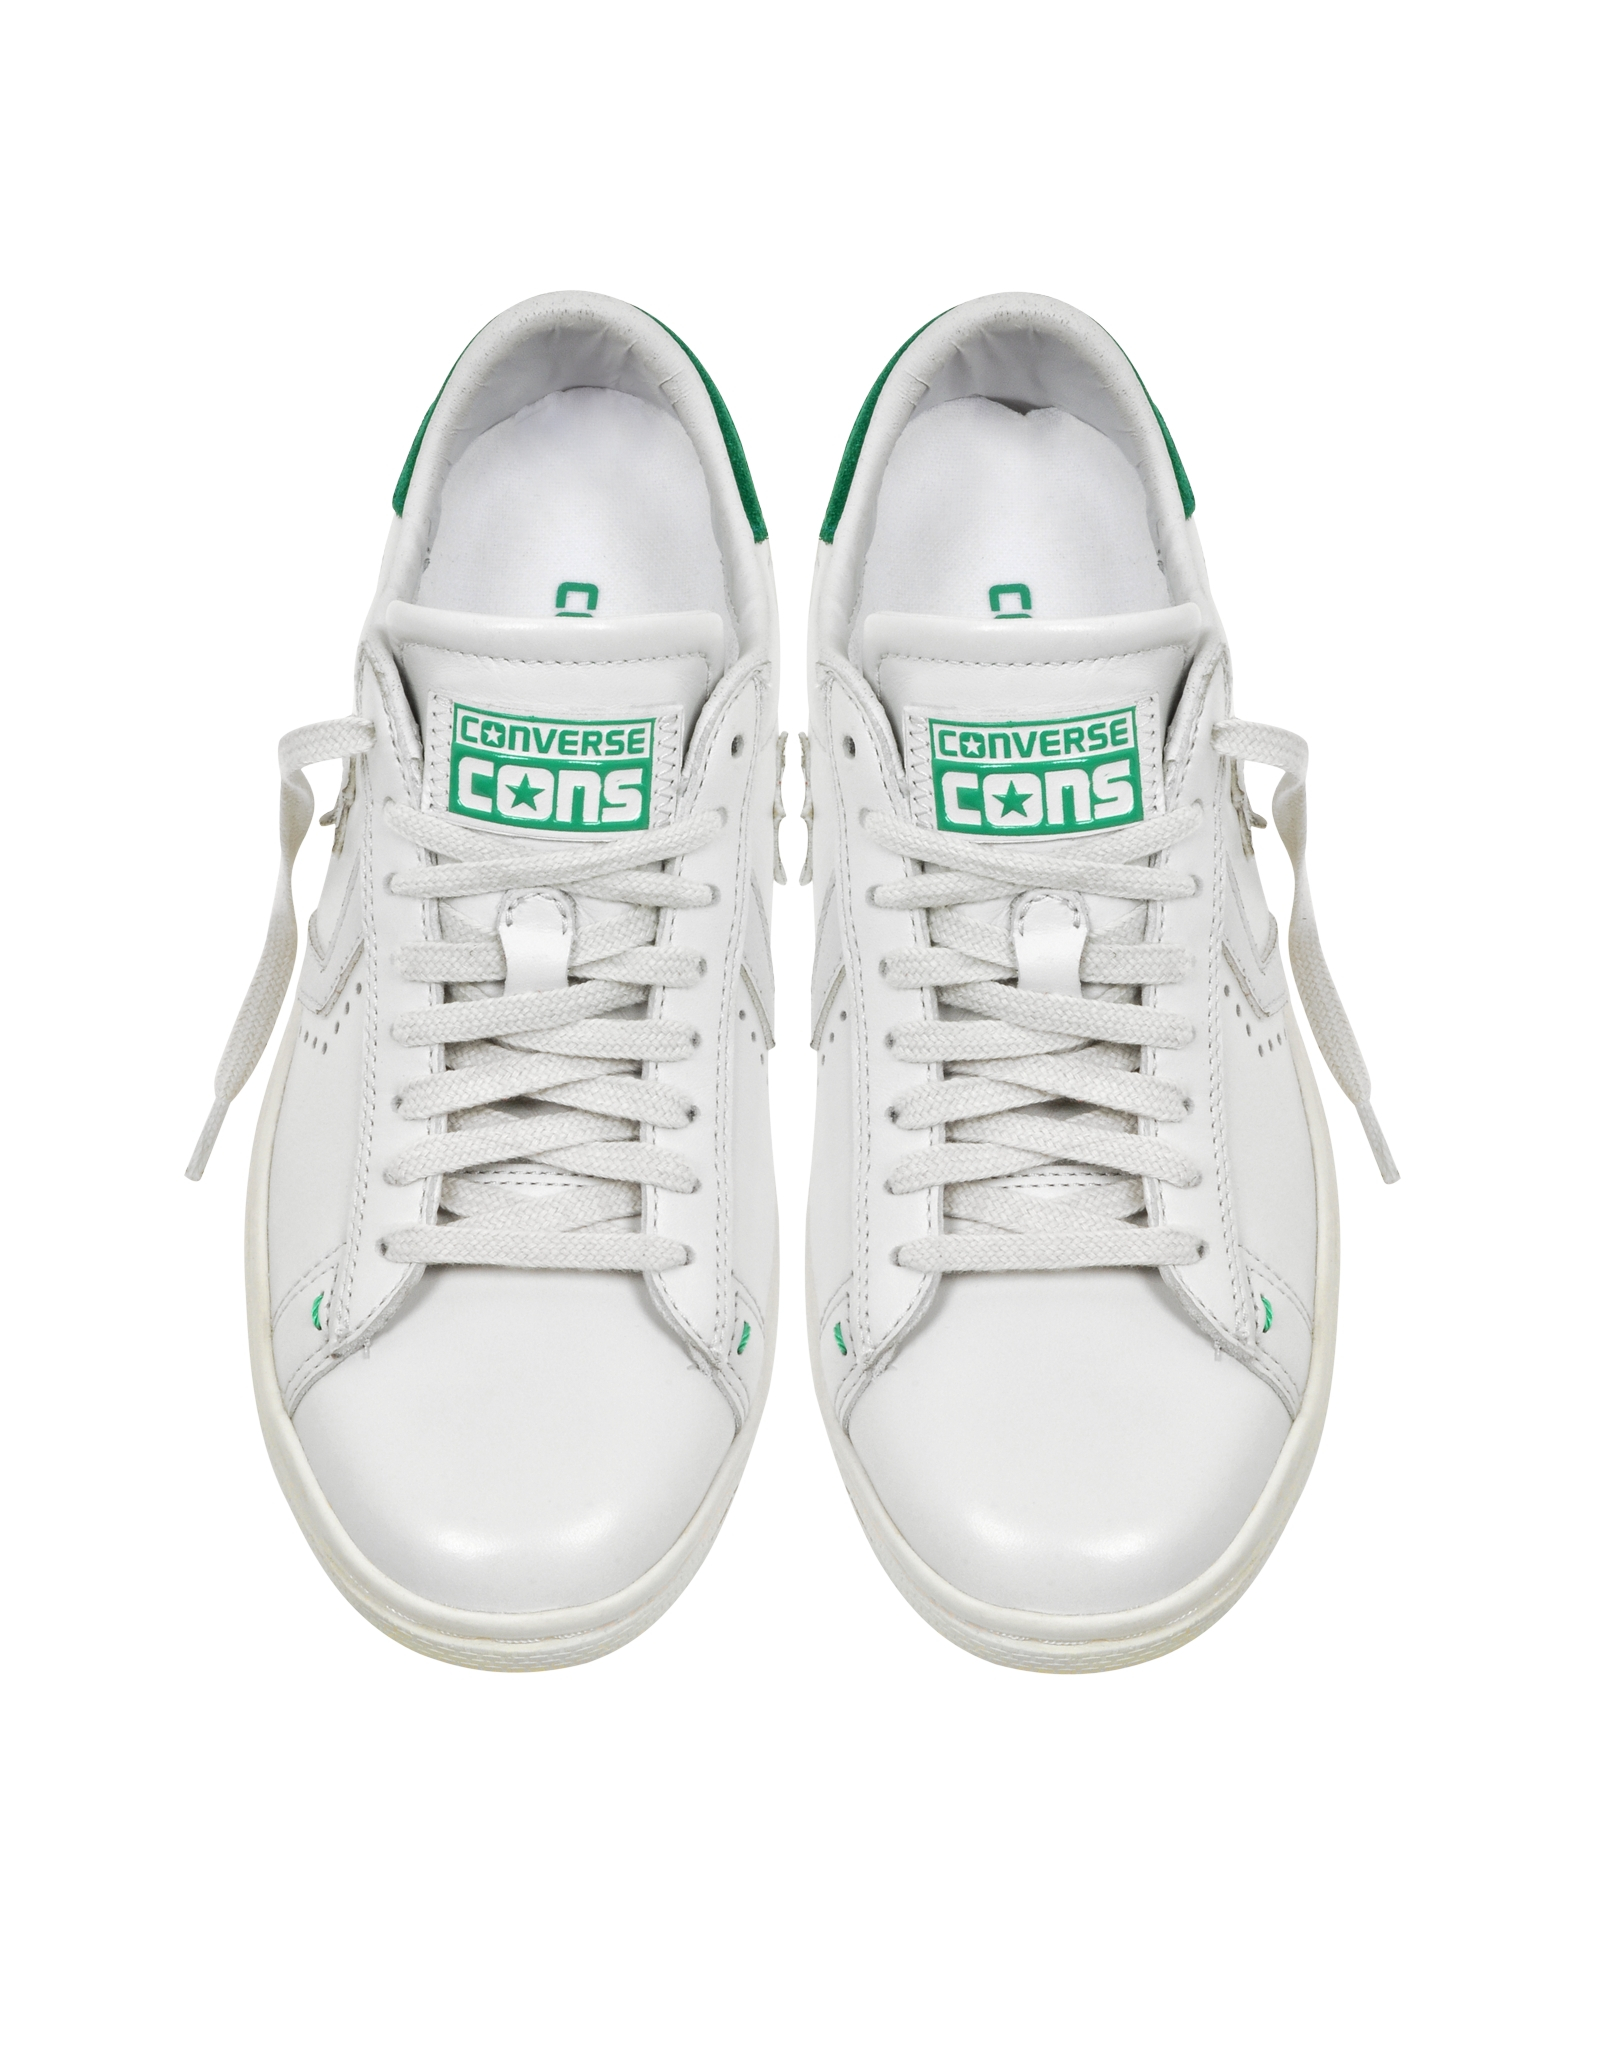 Converse Cons Pro Leather Lp Ox White Dust And Green ...